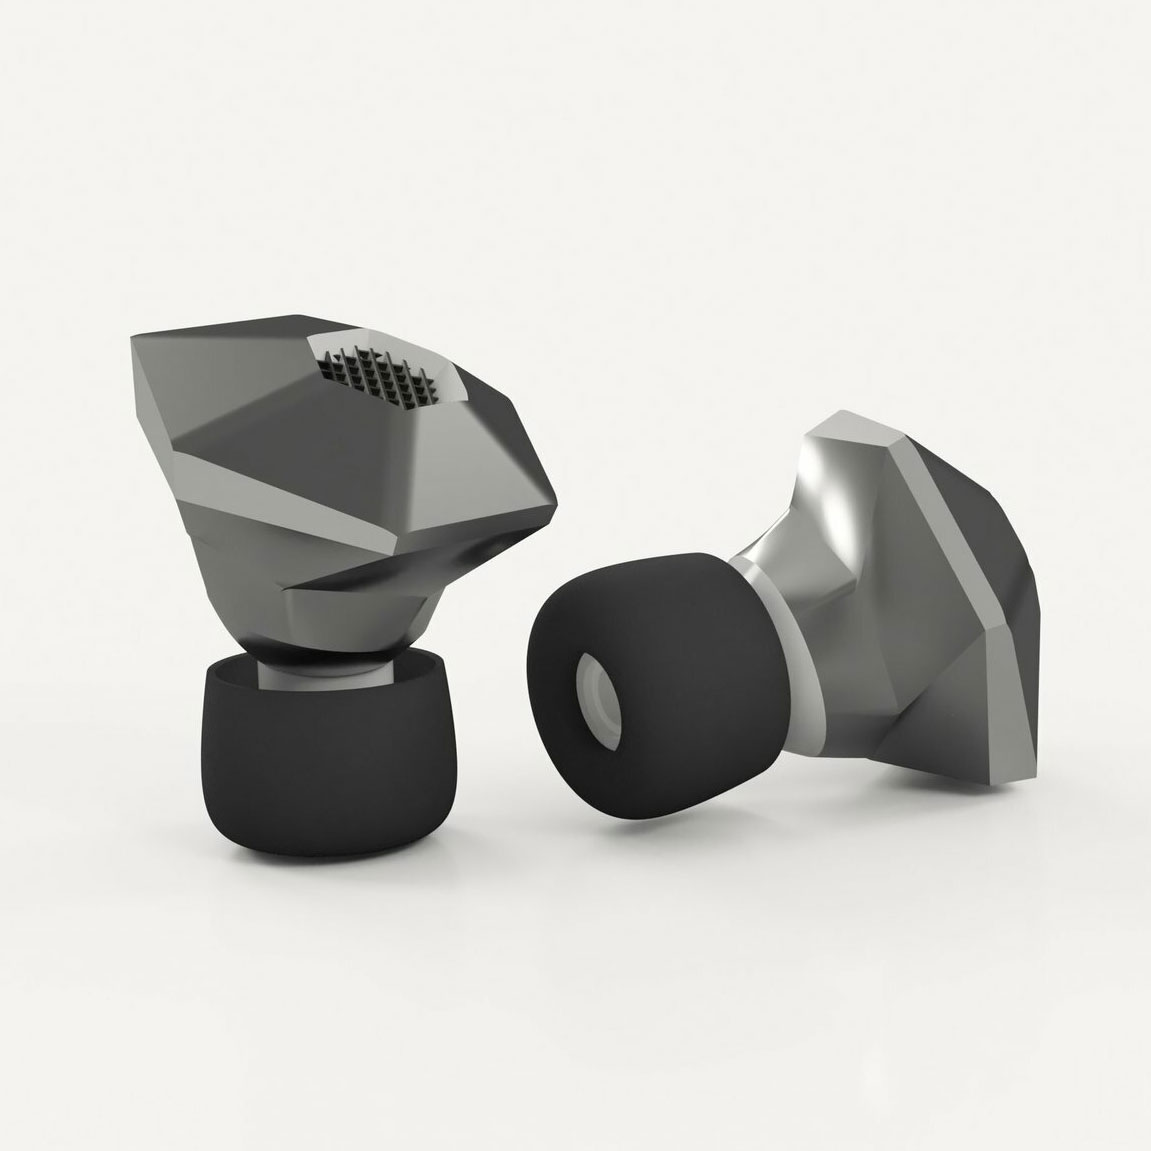 PrintCity Student Elen Parry creates HeX earbuds - socially inclusive hearing aids - Case Study - PrintCity - Manchester Metropolitan University